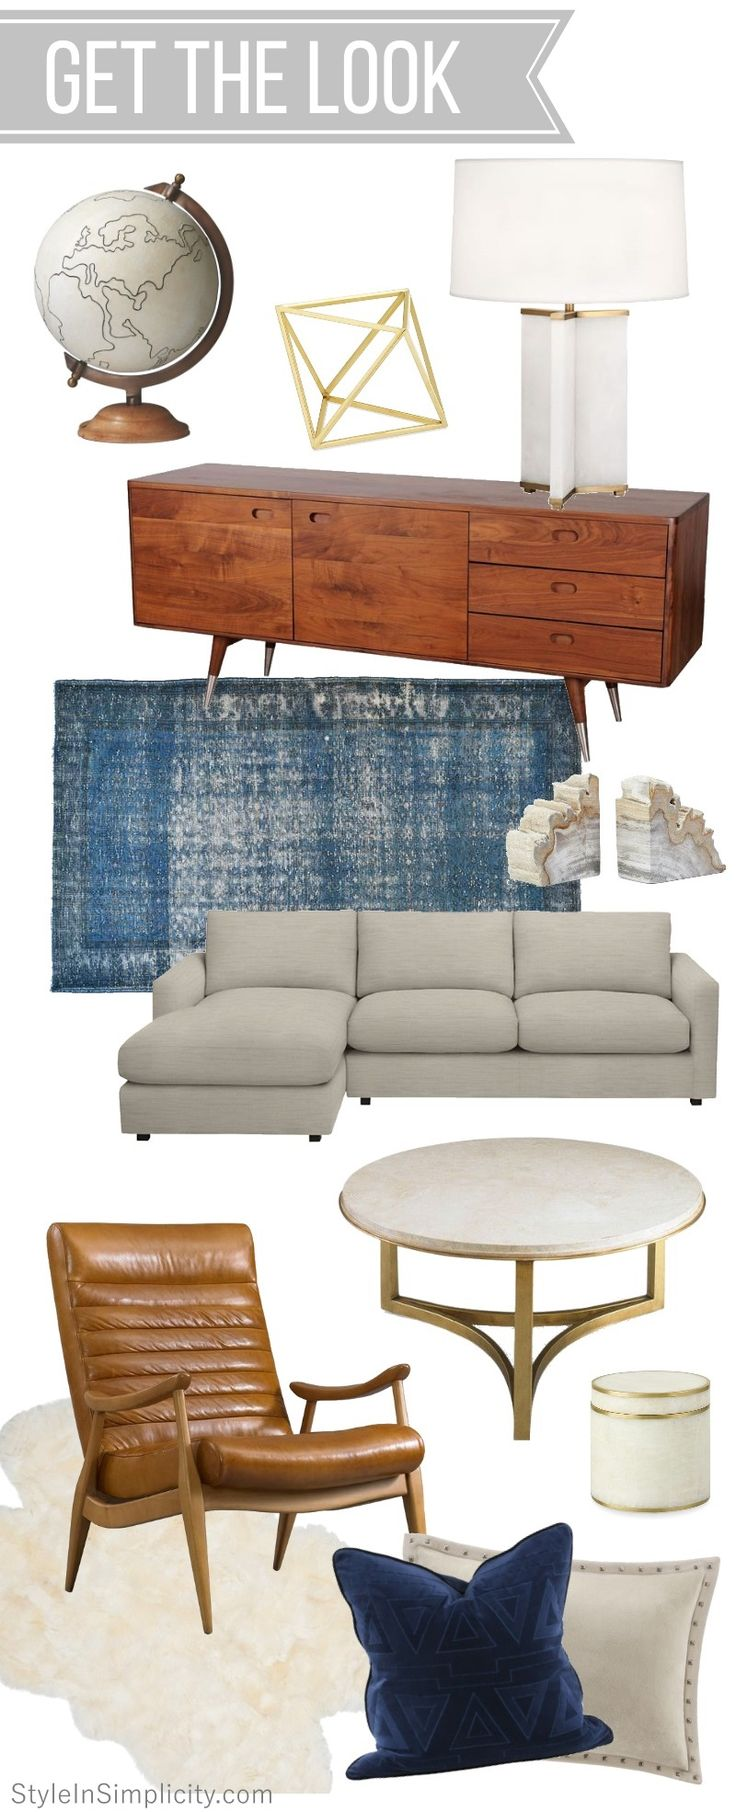 Get The Look // Mid Century Modern Inspired Living Room EDesign Via  StyleInSimplicity.